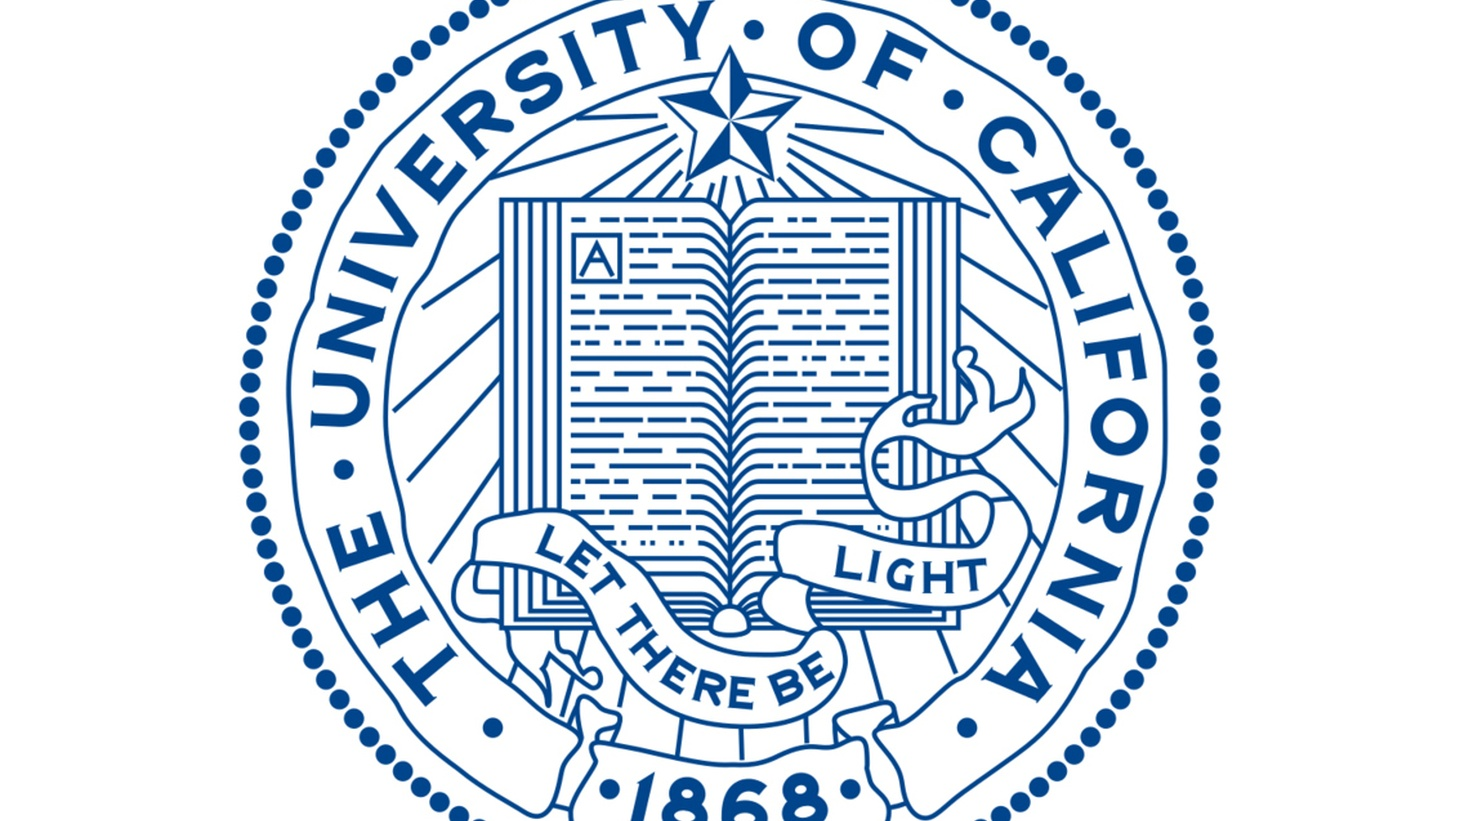 A recent 116 page audit criticized the University California admissions process saying it favored out-of-state students to the detriment of in-state students. But UC officials countered with their own enrollment numbers, adding out-of-state students helped keep costs down.